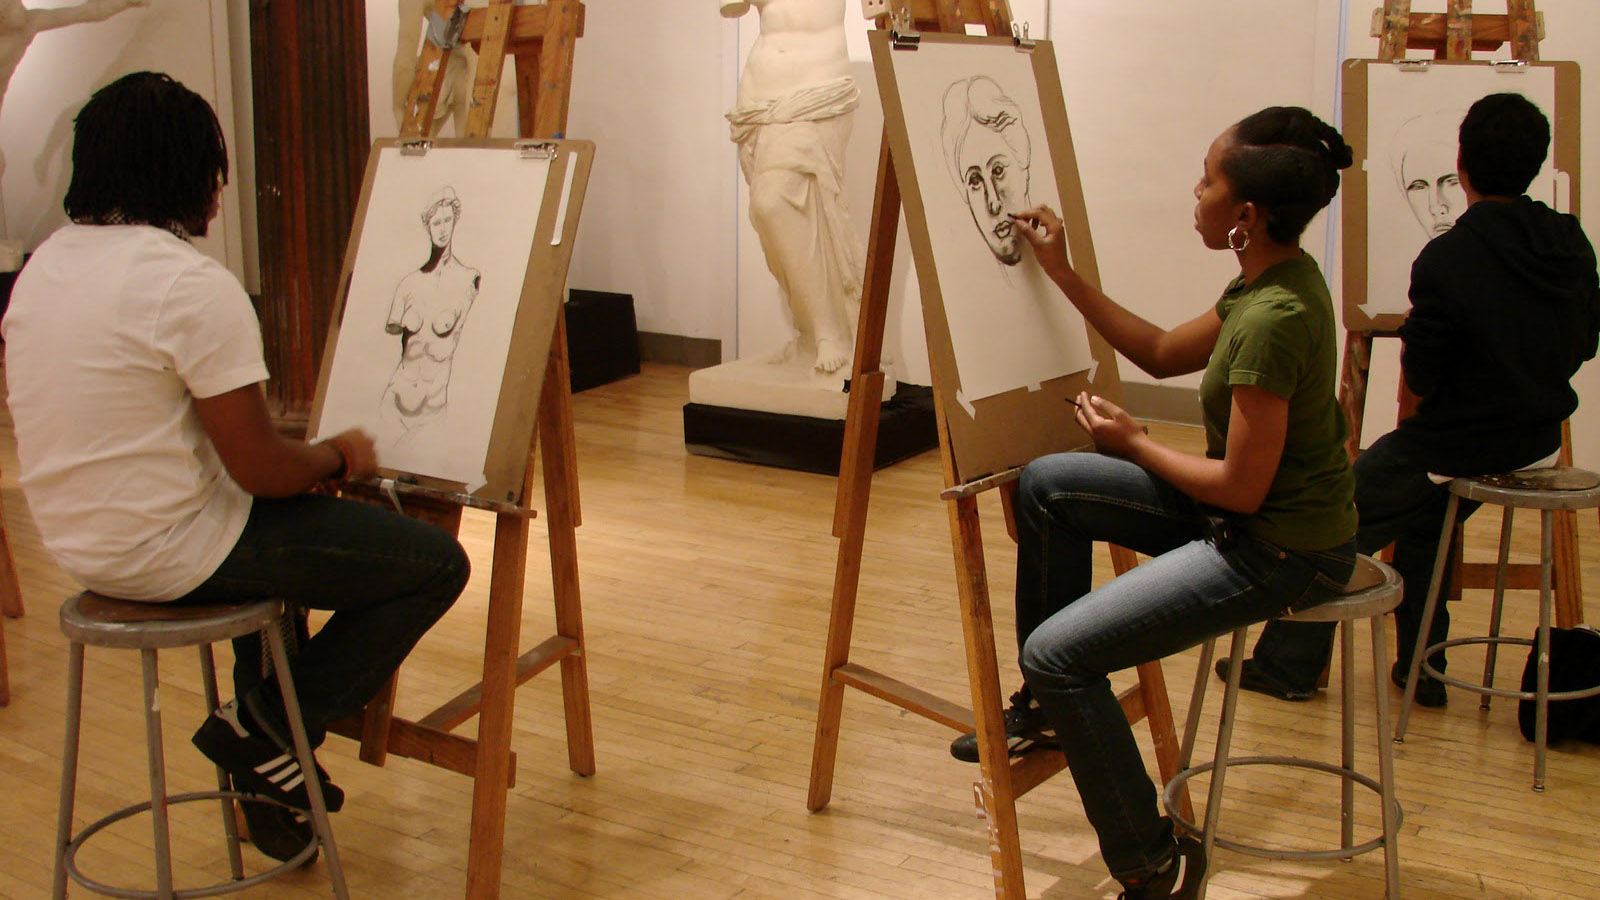 A Checklist To Start Your Own Art-Class Business